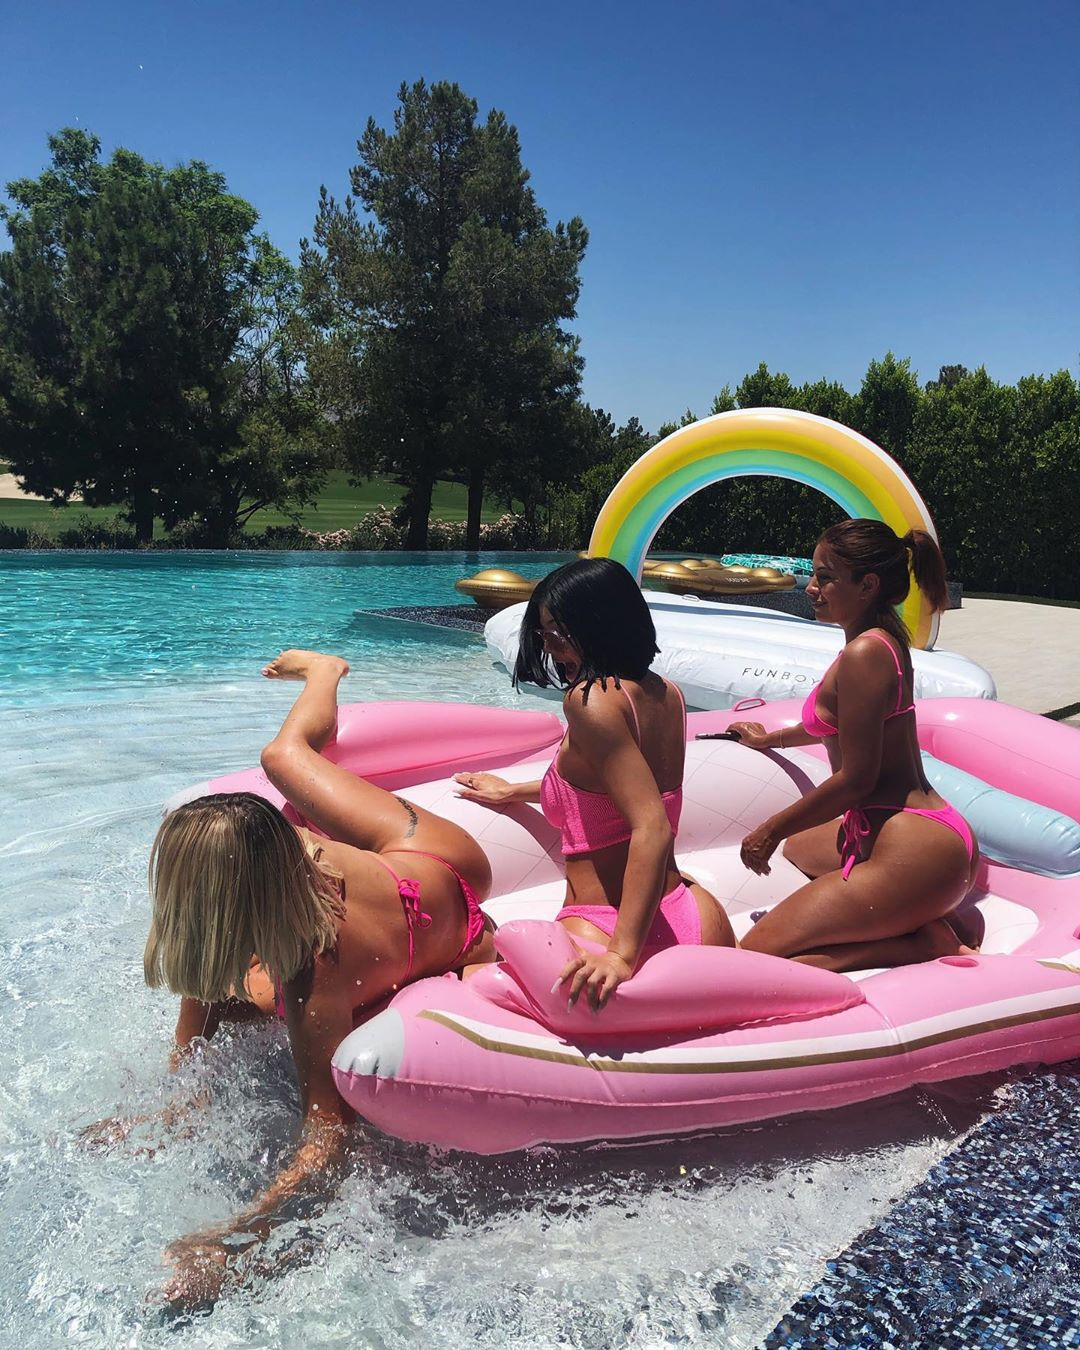 Kylie Jenner And Kendall Jenner In Bikini With Babies